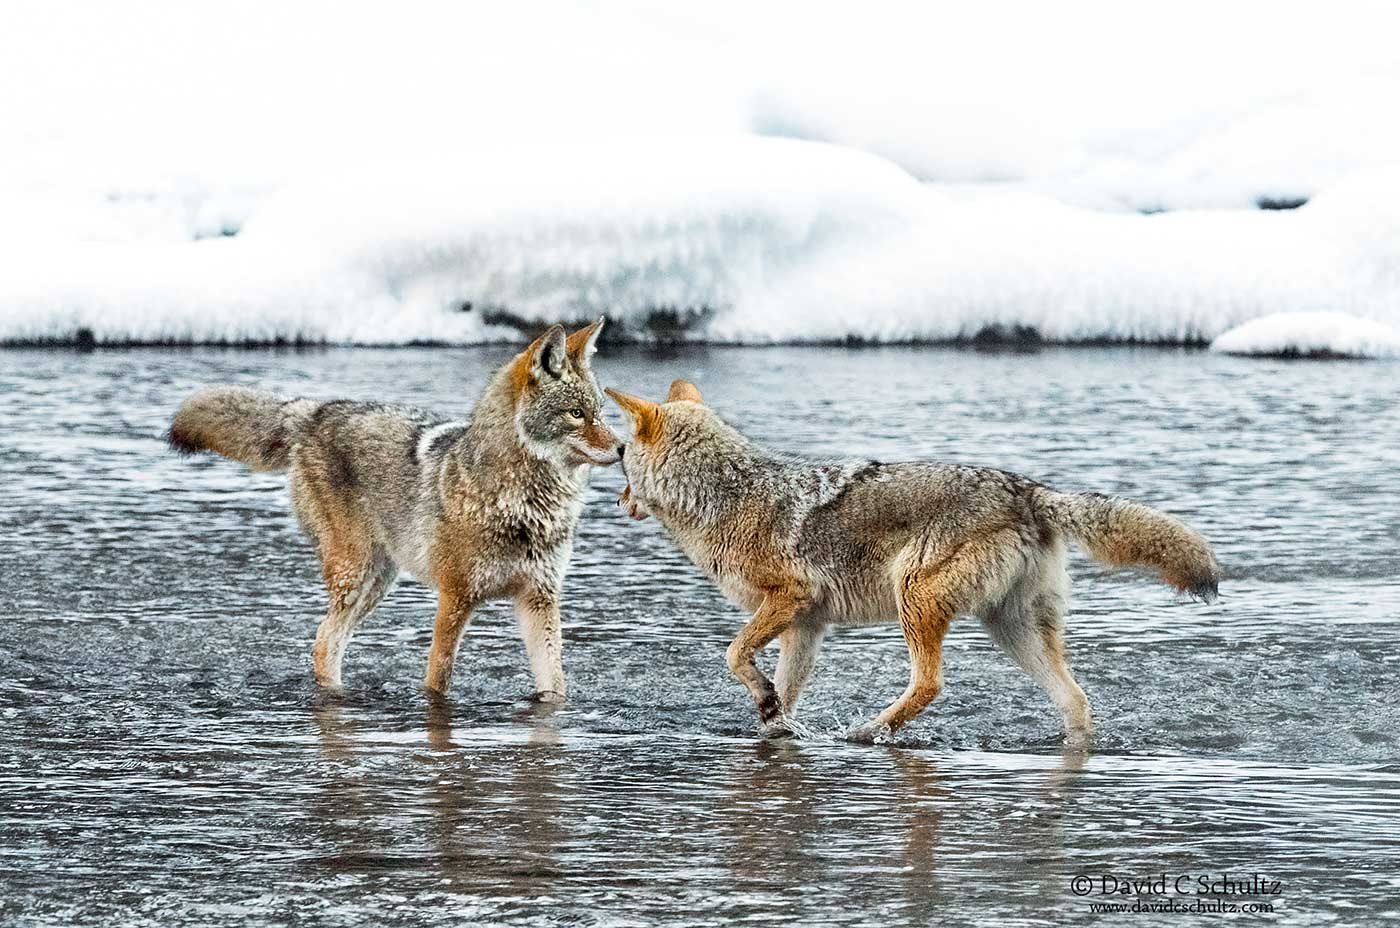 Coyotes in Yellowstone National Park - Image #161-5839